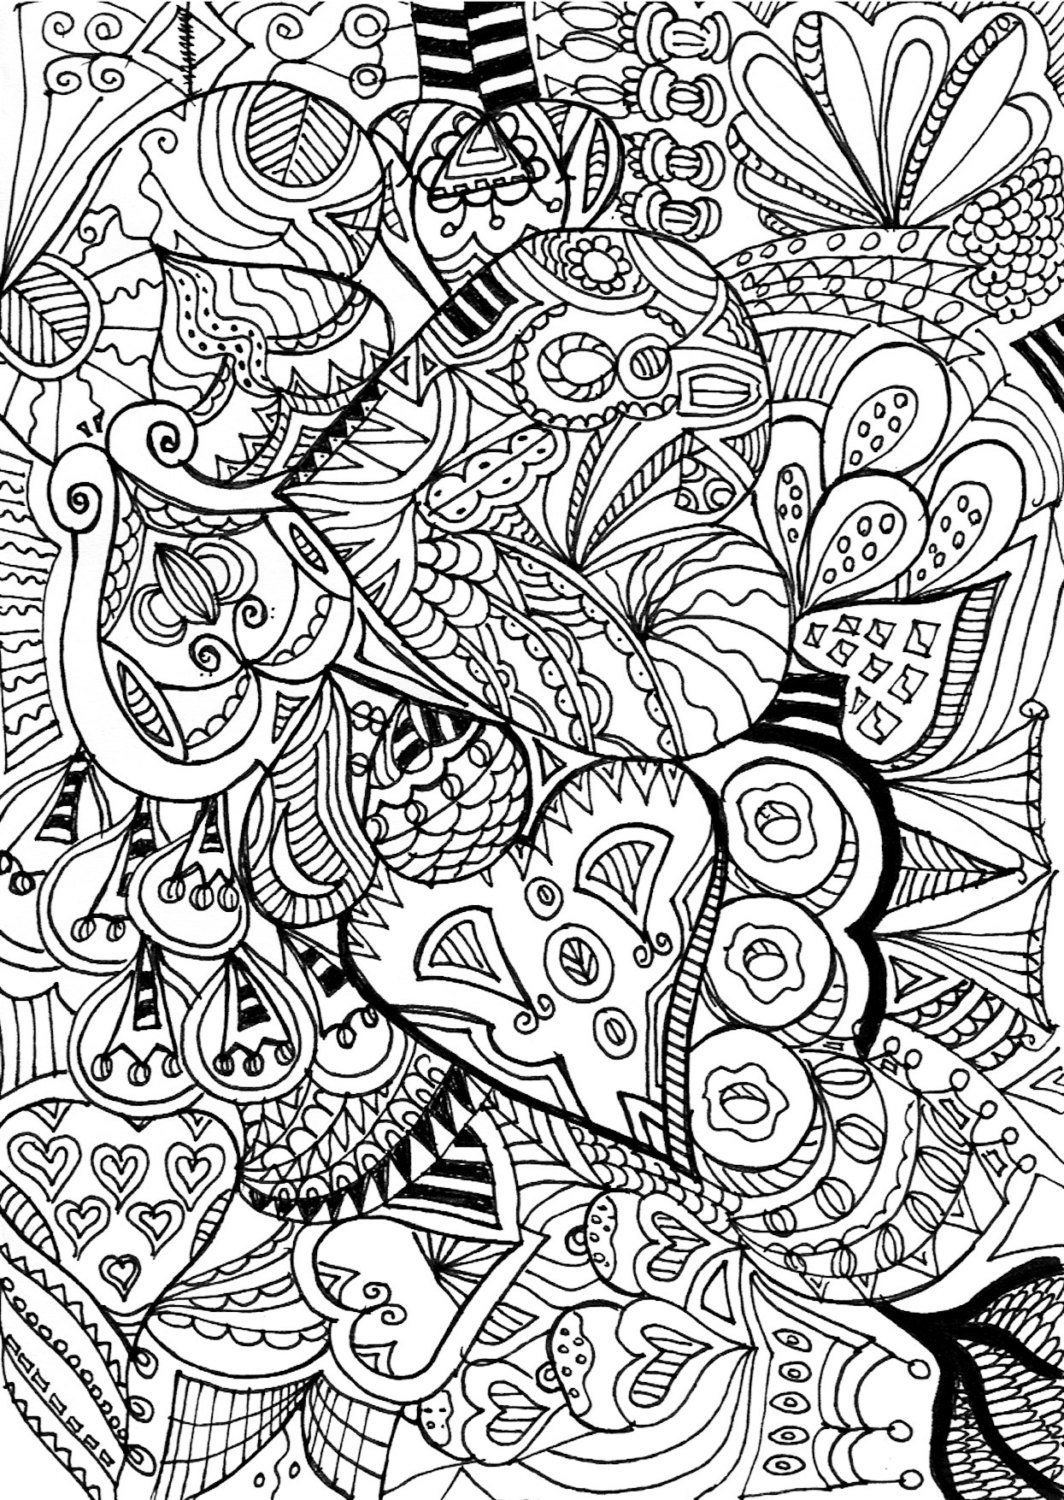 zentangle coloring pages zentangle colouring pages in the playroom zentangle pages coloring